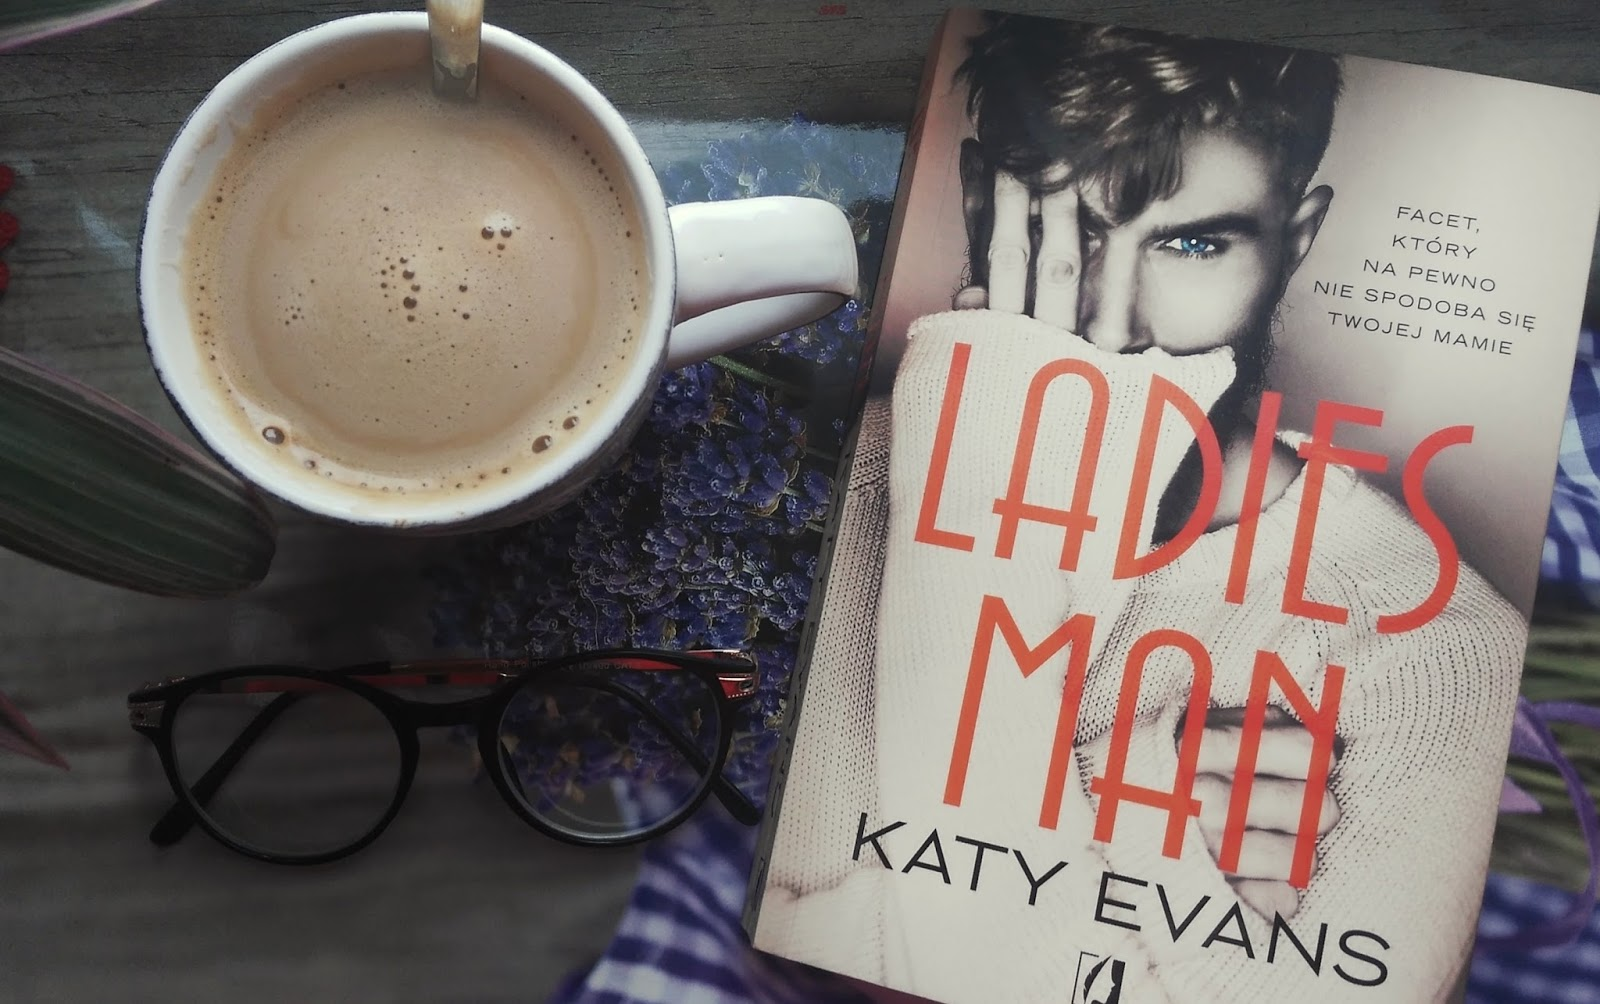 Ladies Man Katy Evans - recenzja